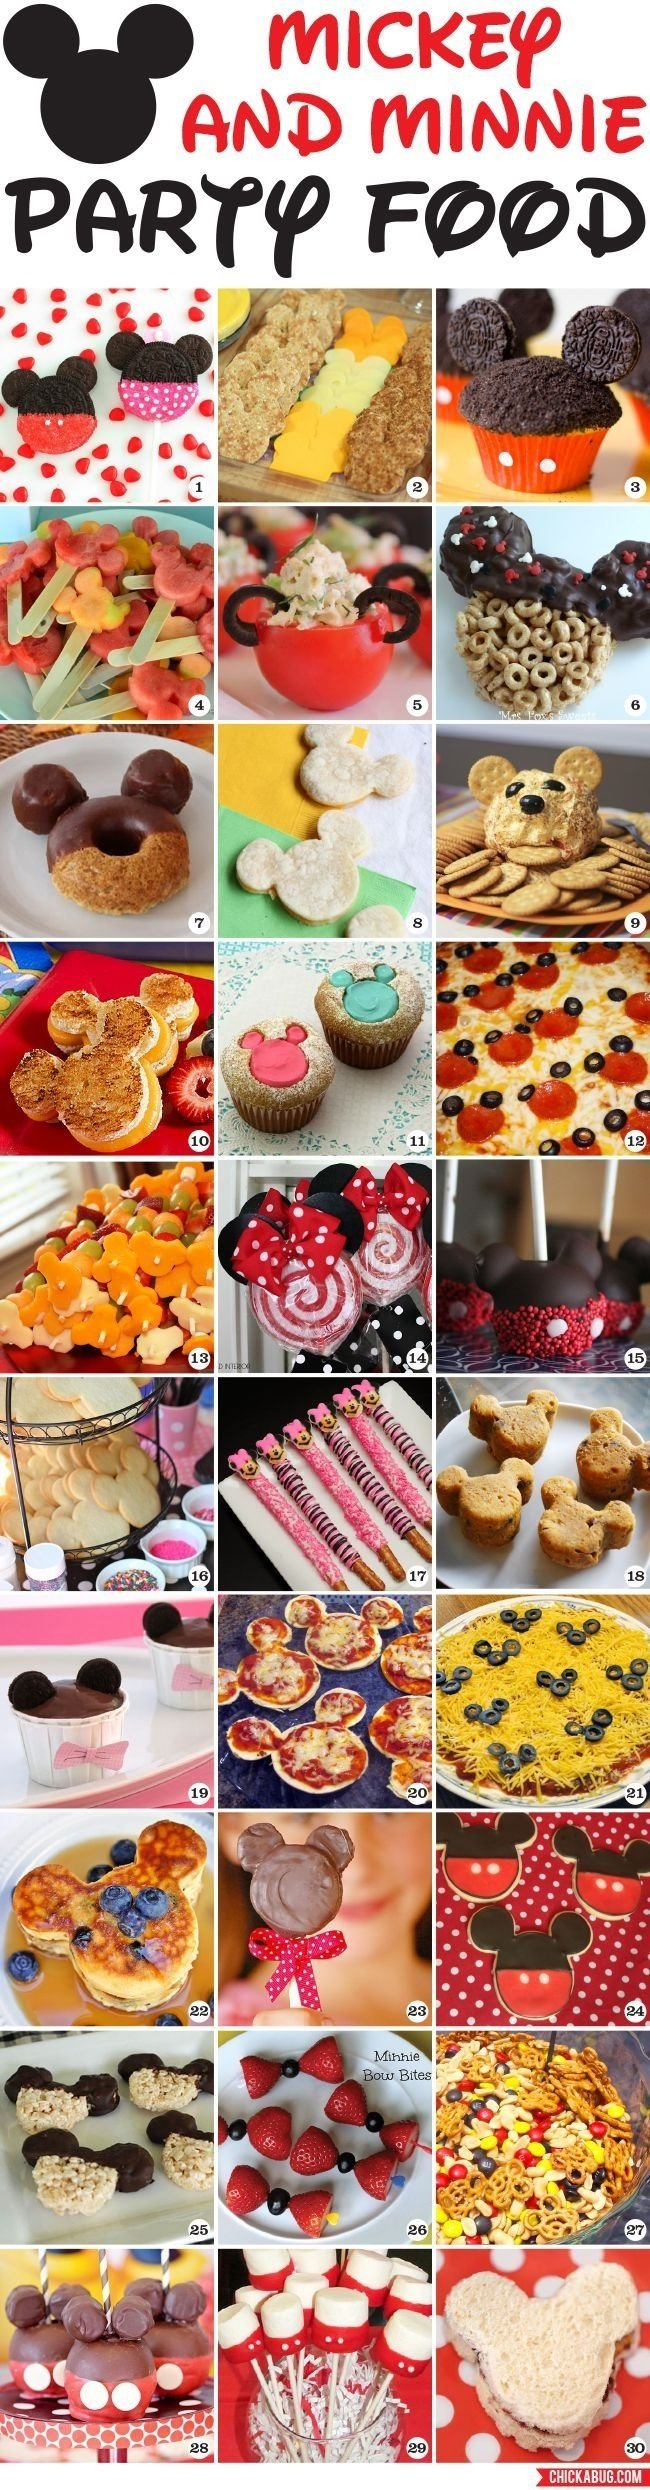 10 Most Recommended Mickey Mouse Clubhouse Food Ideas 30 awesome mickey mouse and minnie mouse party food ideas fetes 2020